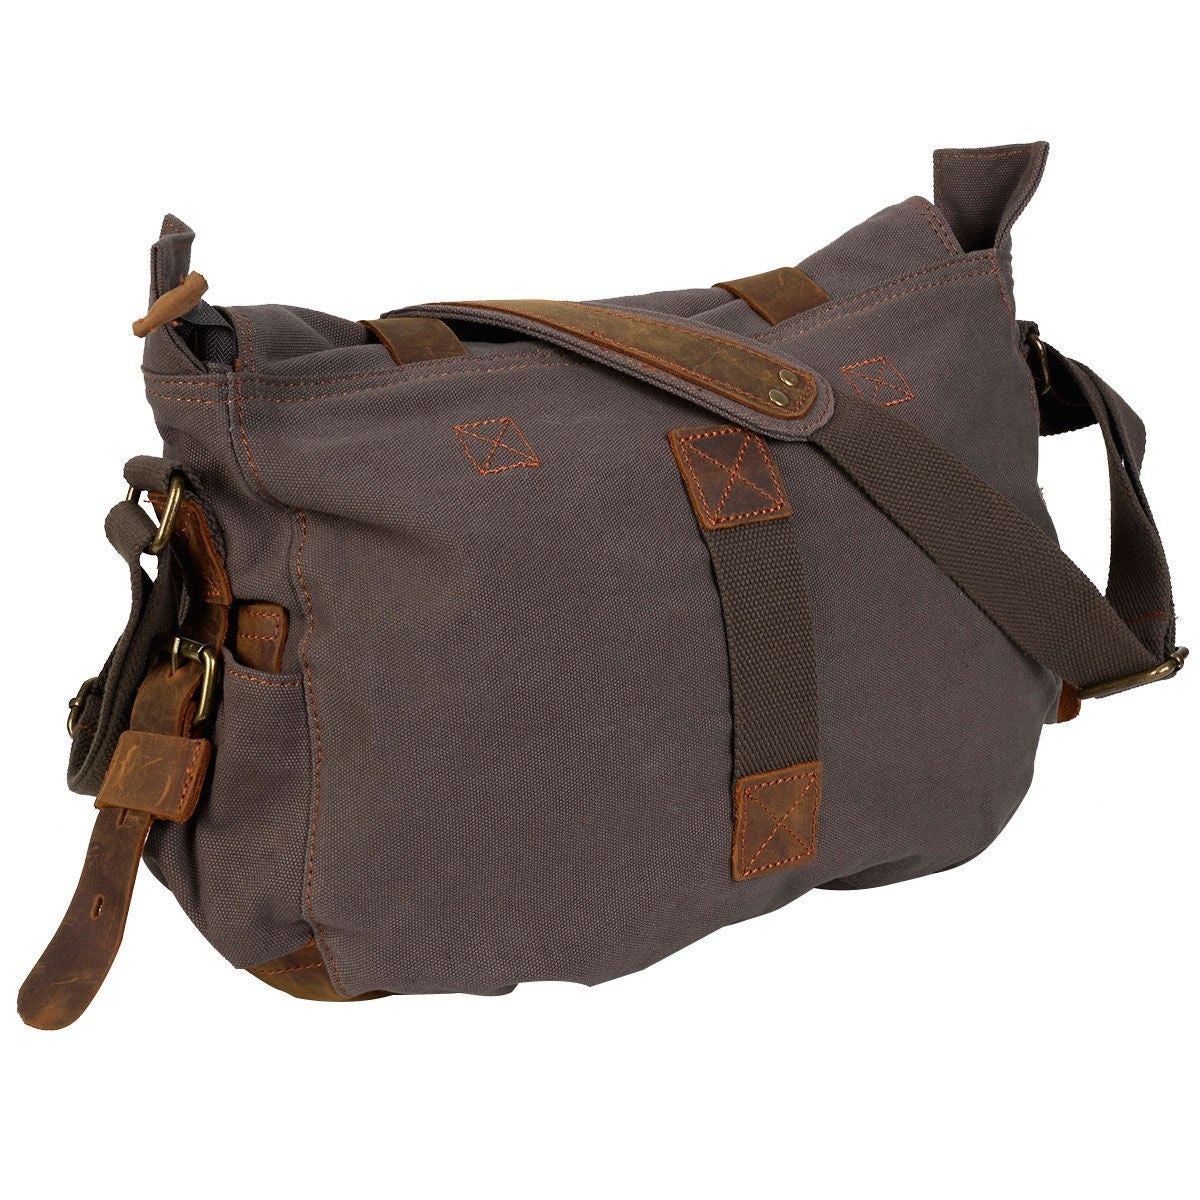 Costway Men S Vintage Canvas Leather School Military Shoulder Messenger Bag Army Green Free Shipping On Orders Over 45 24631633